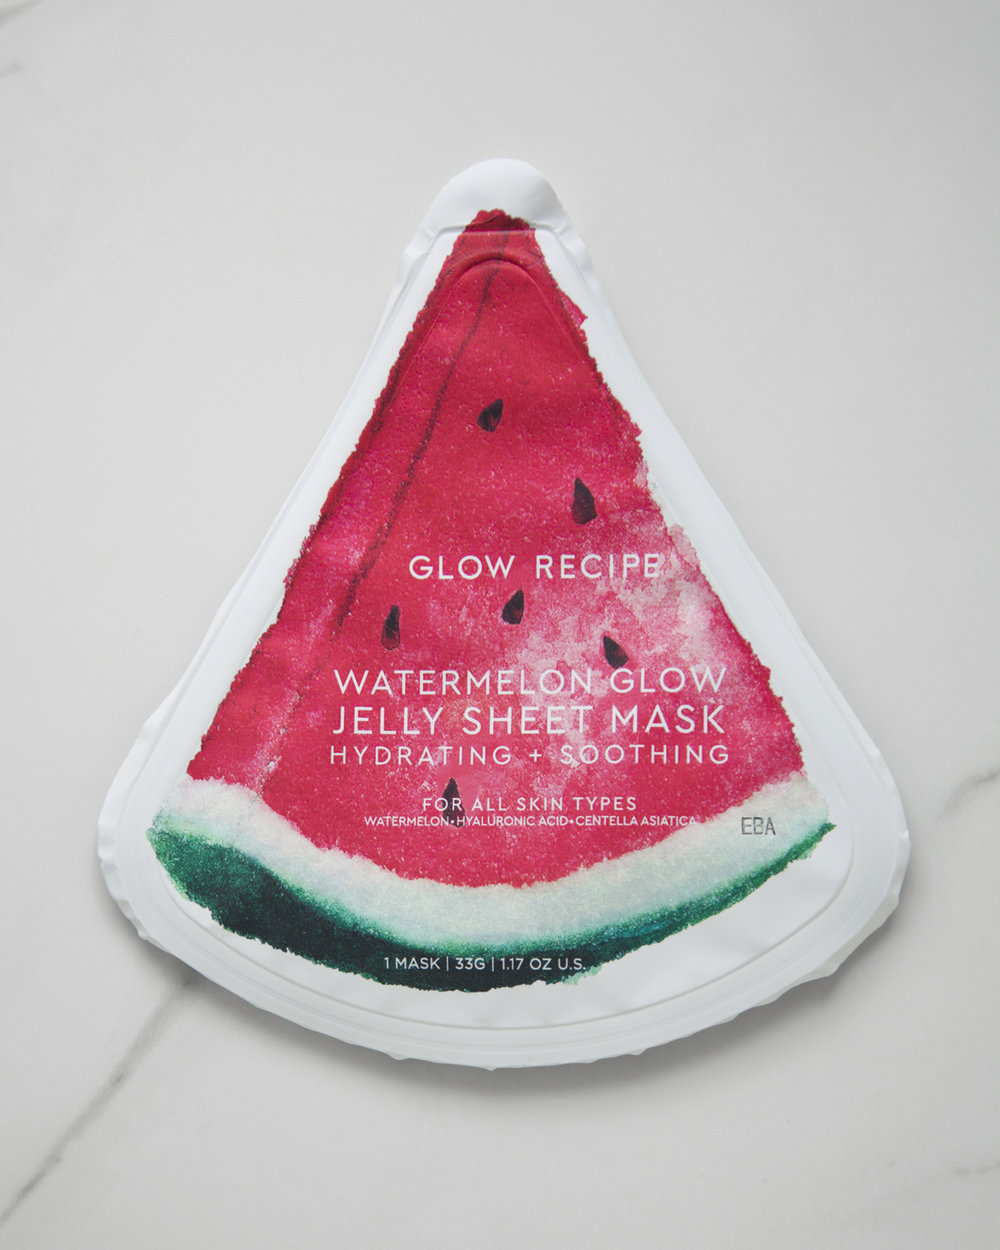 Glow Recipe Watermelon Glow Jelly Sheet Mask $8